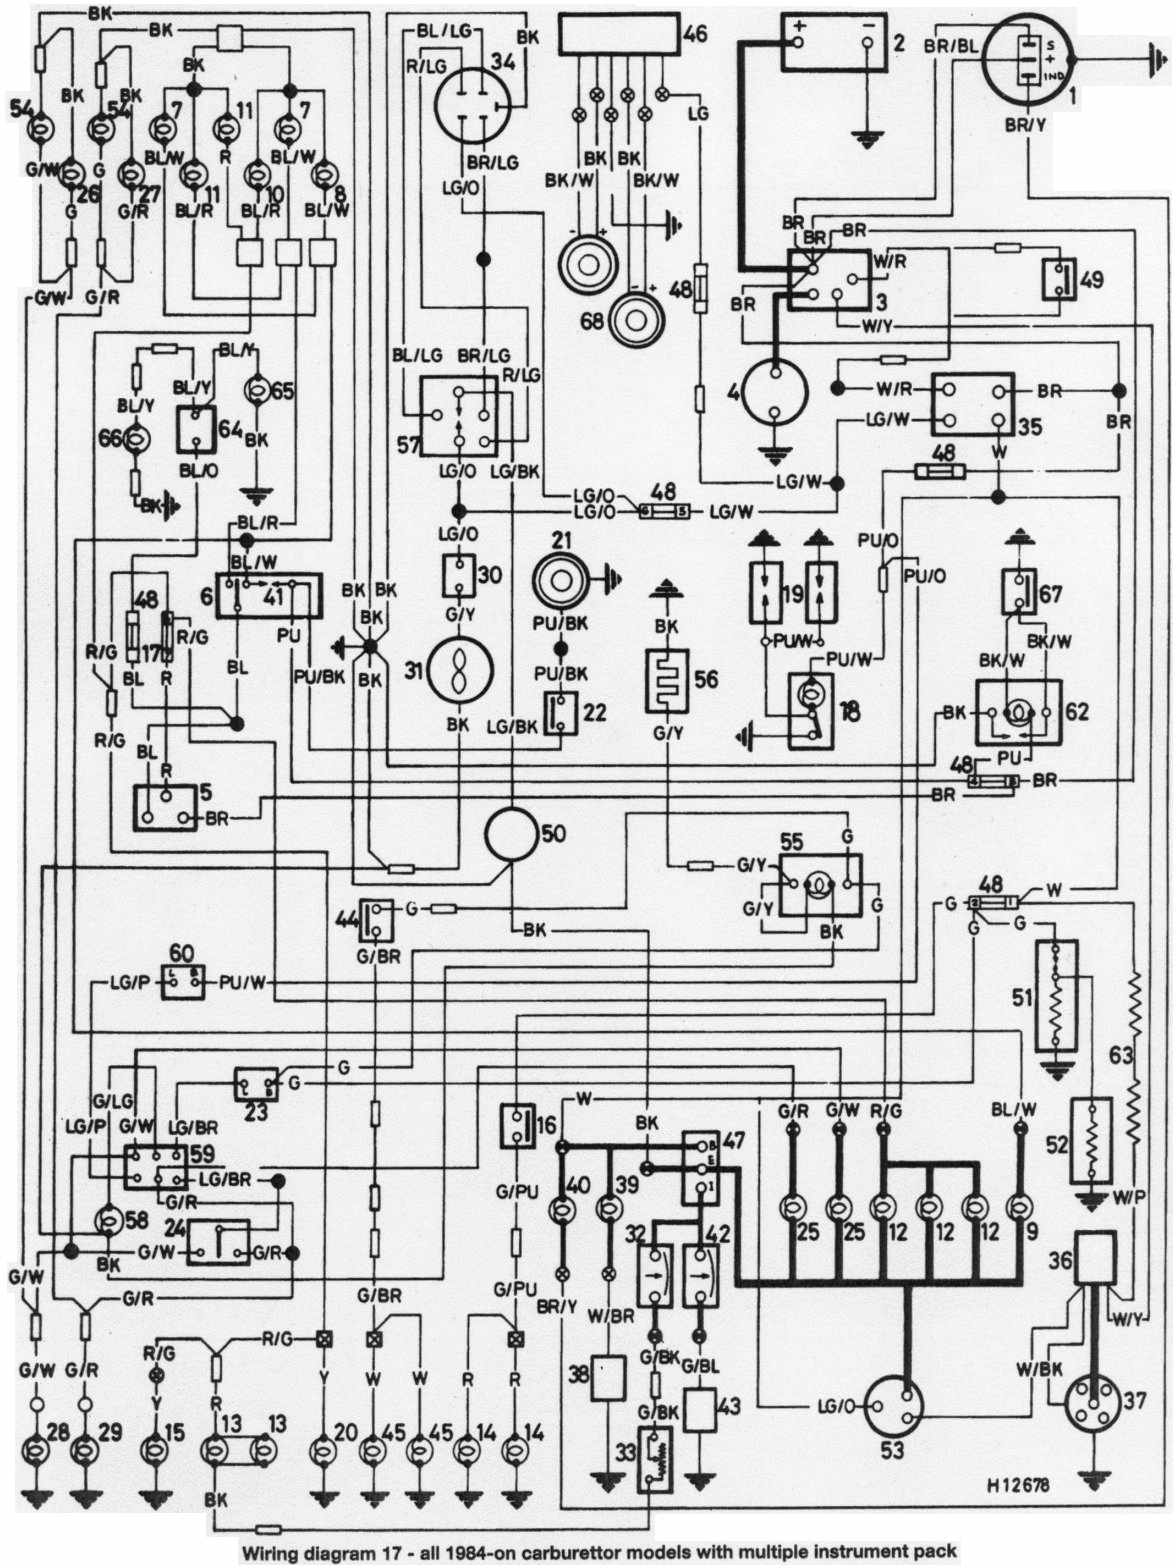 wiring diagram of 1984 onwards all mini series with multiple instrument pack?tu003d1485074710 psm5pm wiring diagram,pm \u2022 45 63 74 91  at panicattacktreatment.co